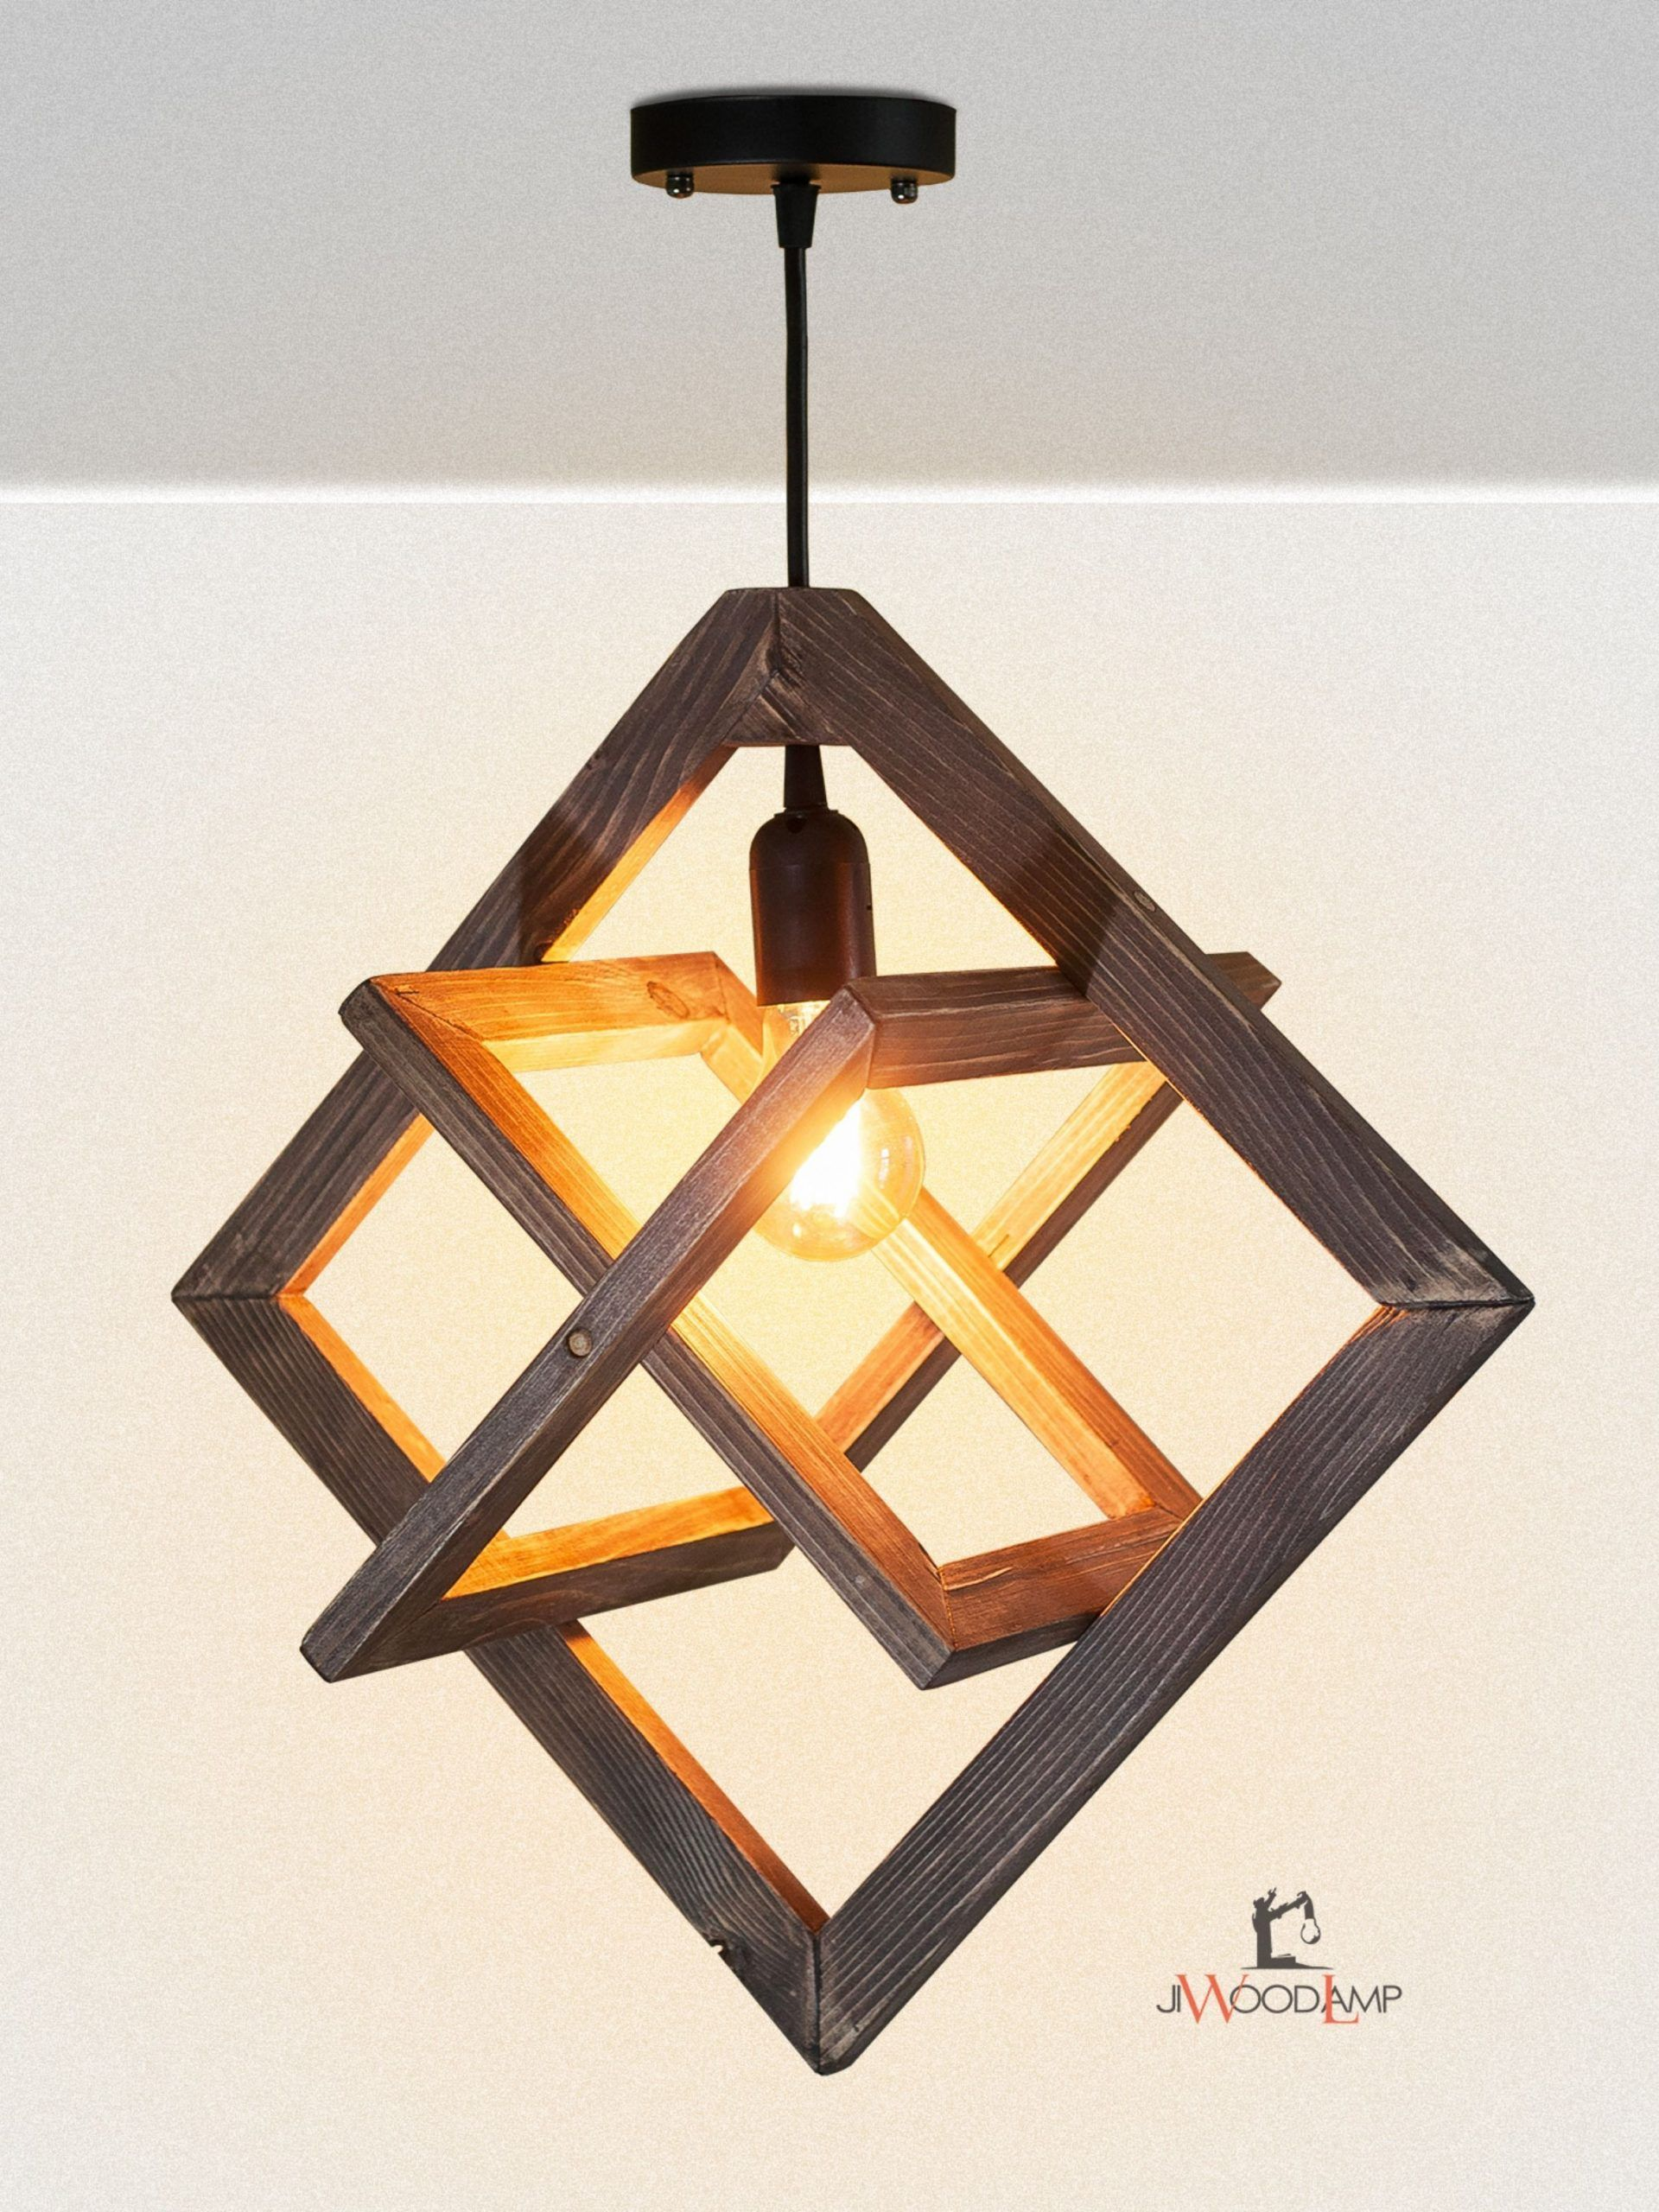 Hanging lamp made of wood, wooden lamp, #aus